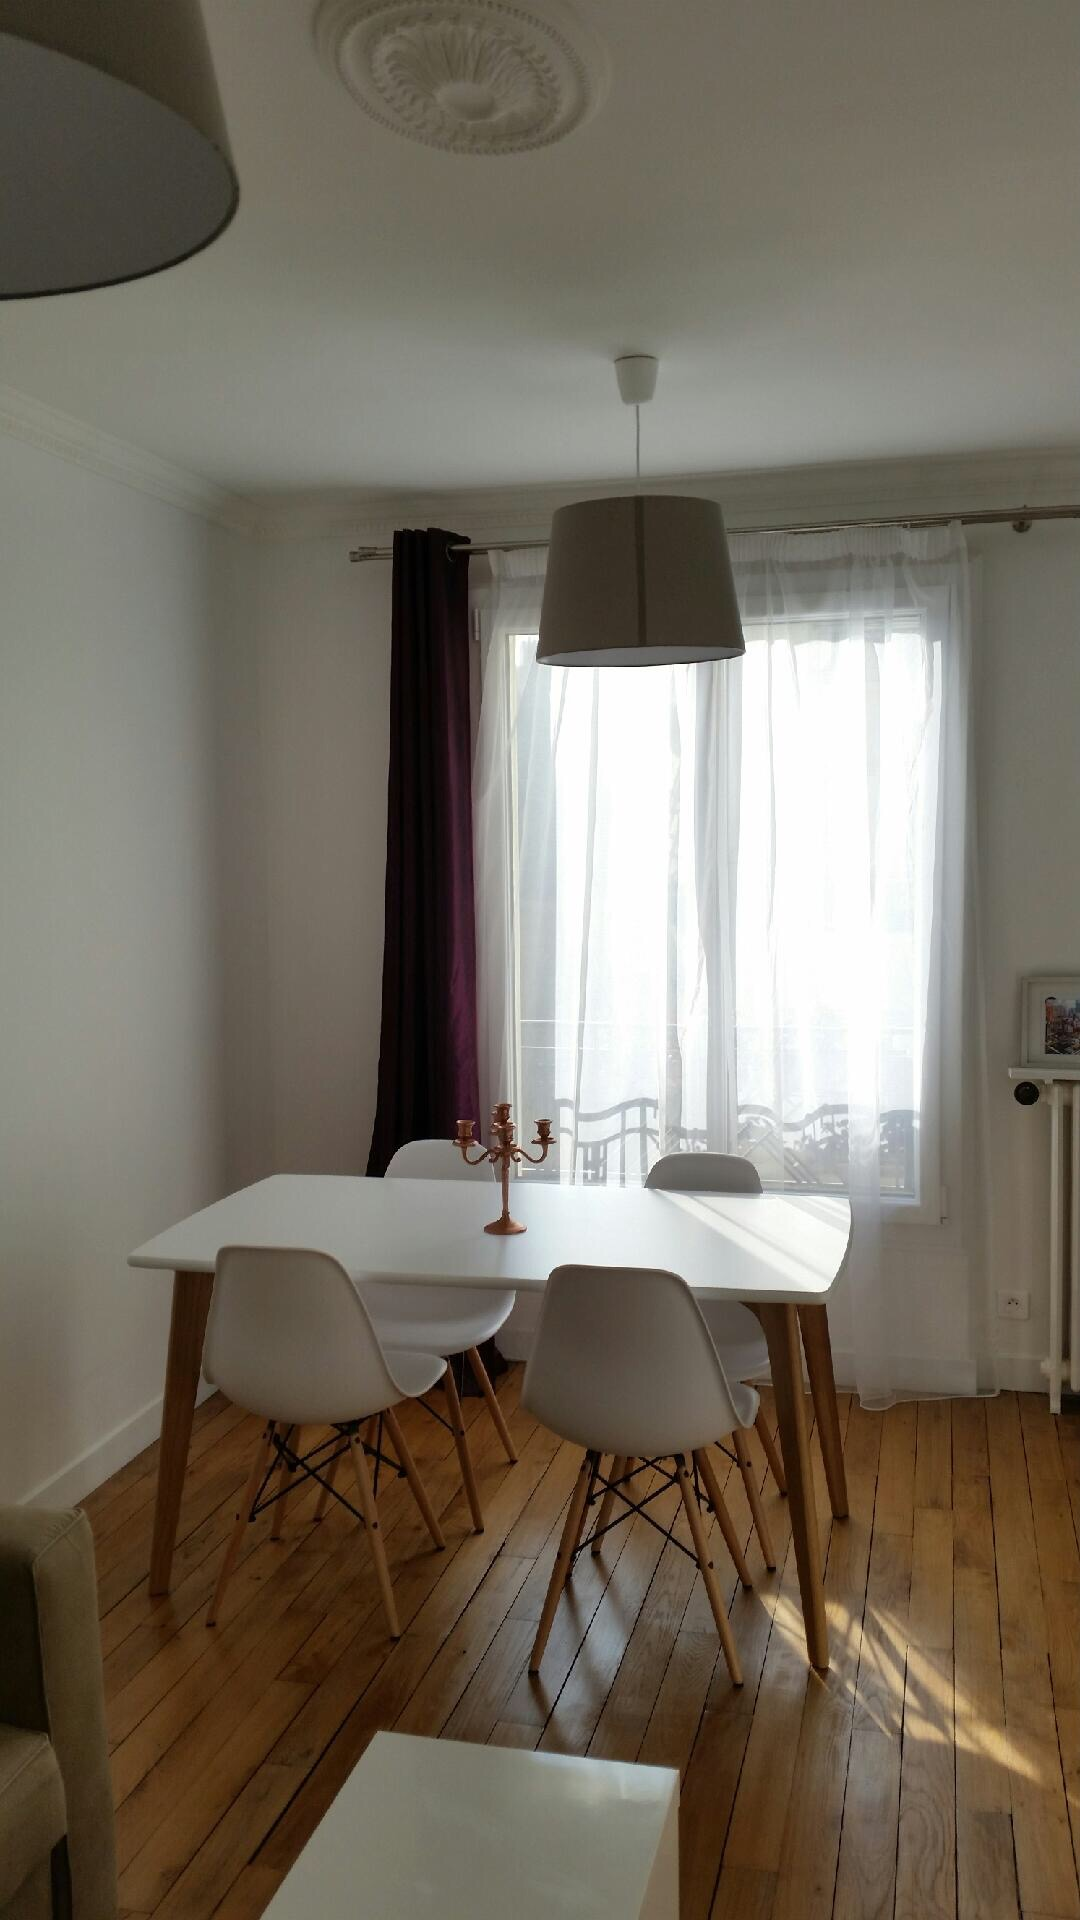 Rénovation d'un appartement à Paris 17ème